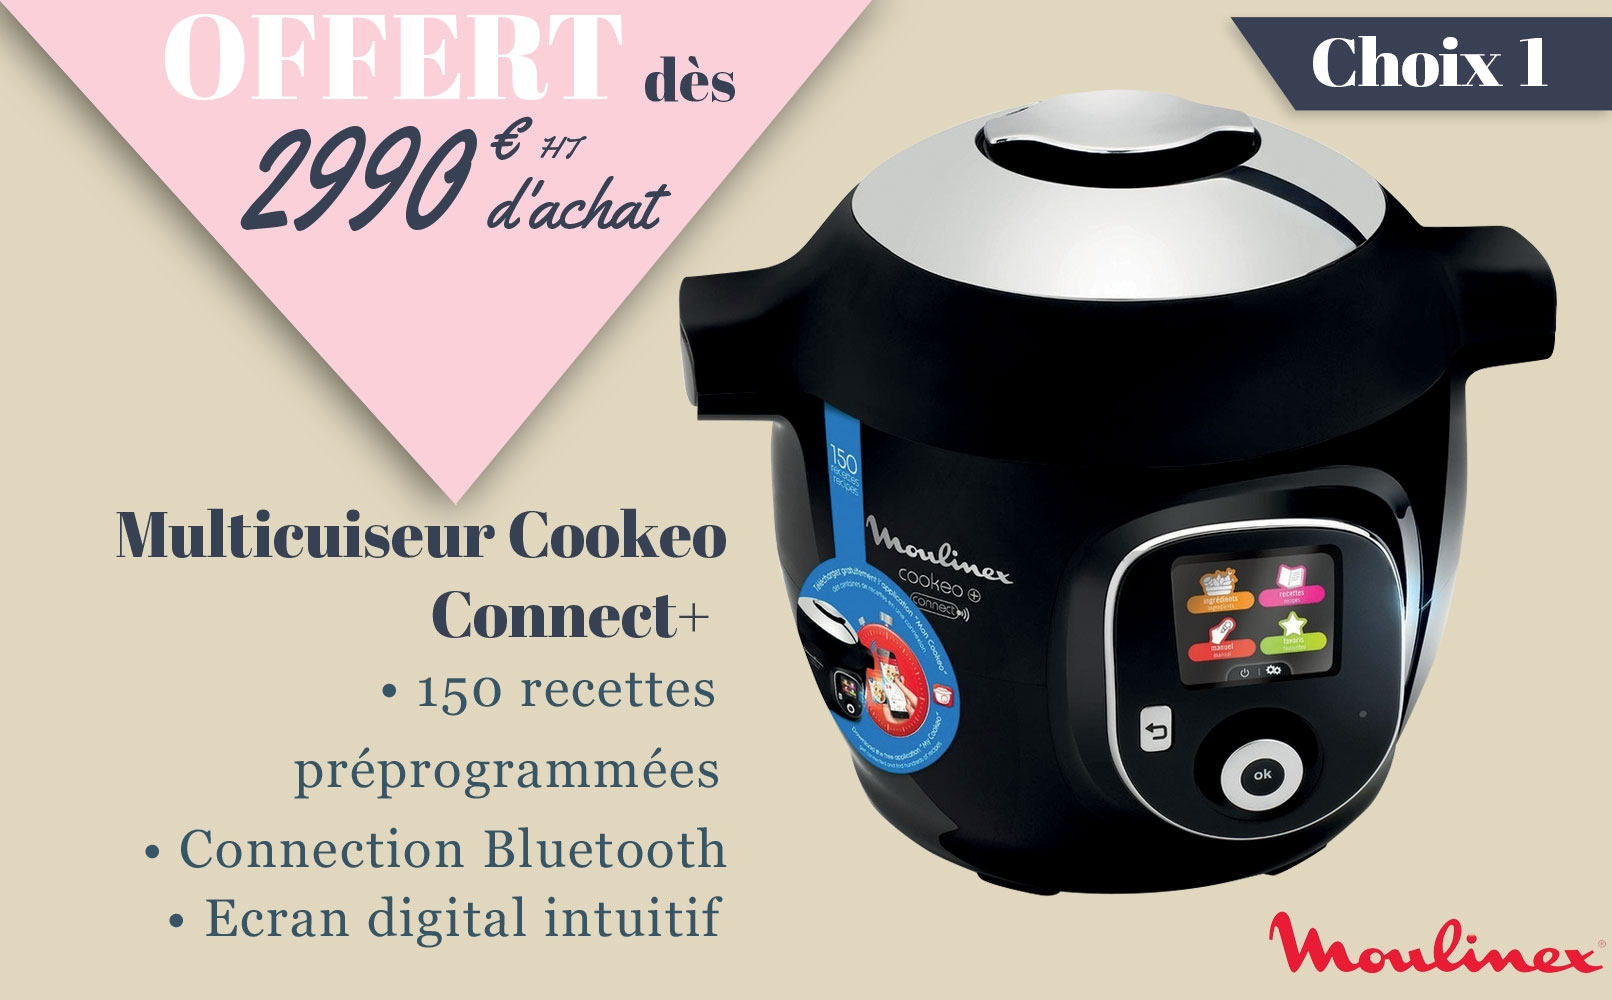 Multicuiseur Cookeo Connect +